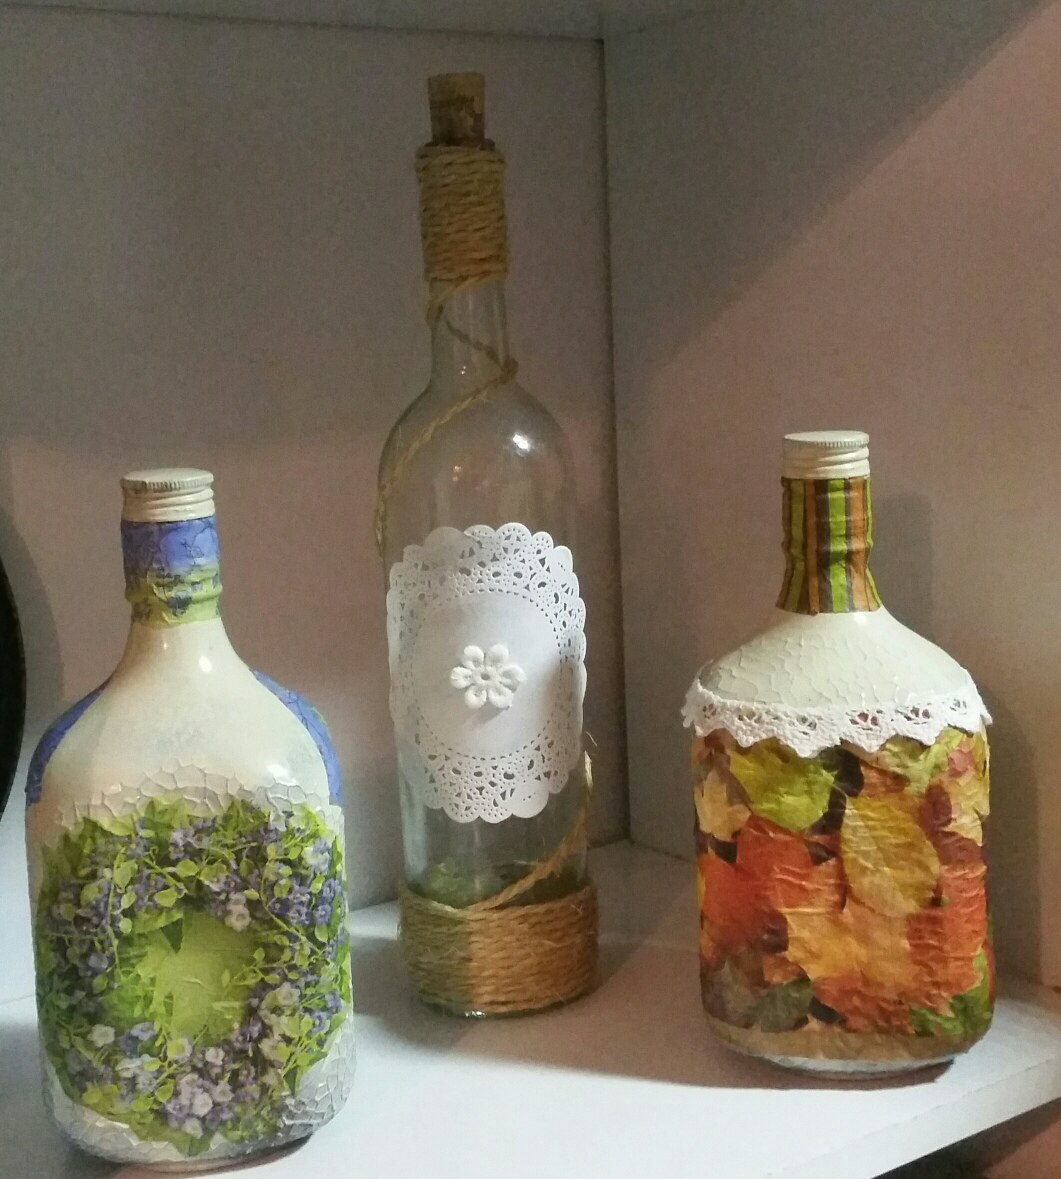 Comprar Botellas Decoradas Botellas Decoradas Artesanales X 3 280 00 En Mercado Libre